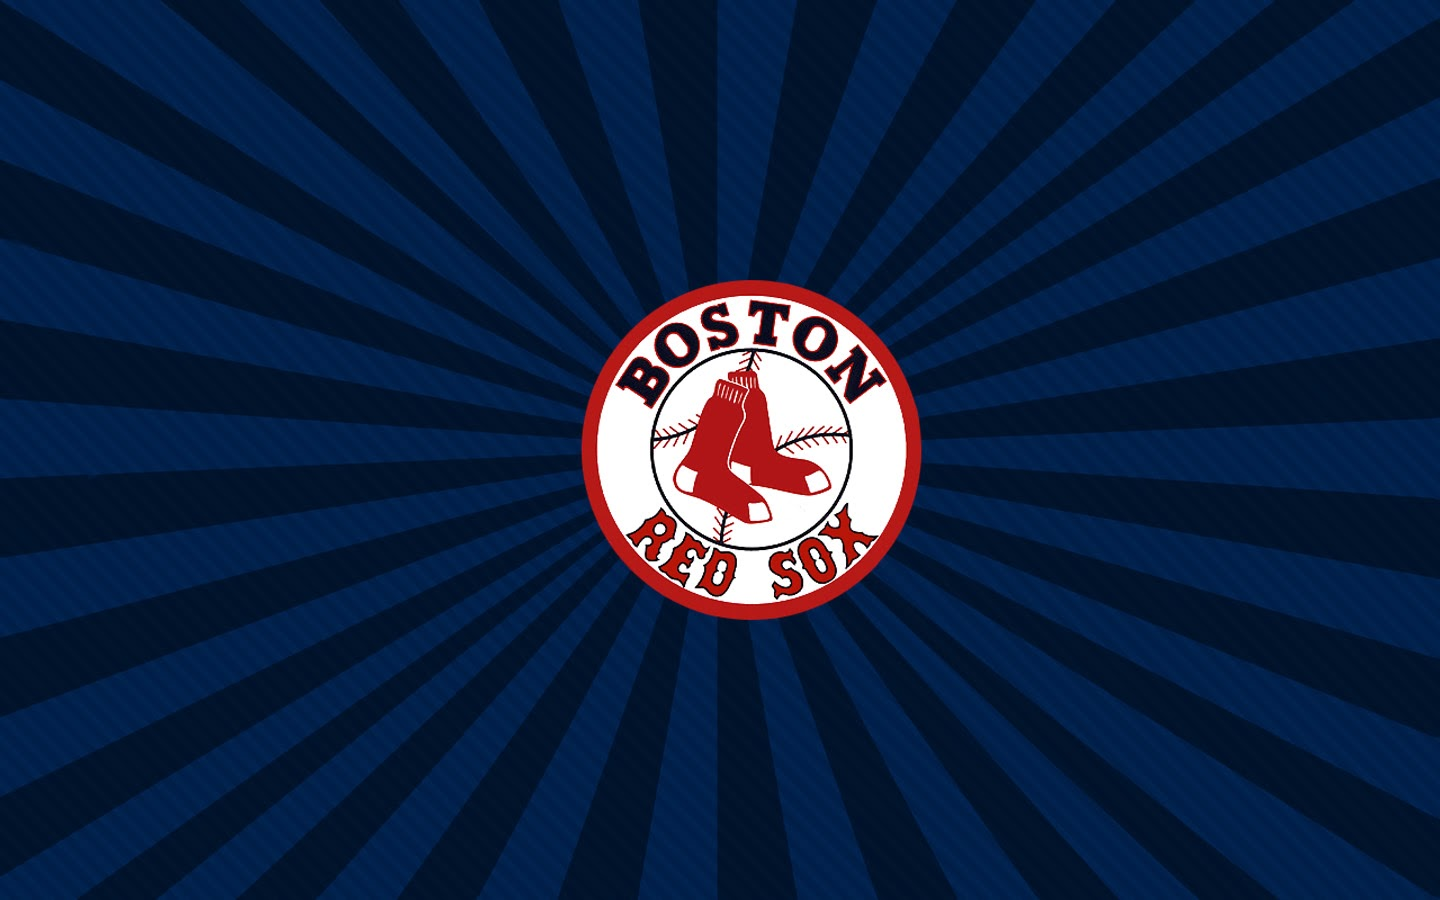 boston red sox wallpaper boston red sox wallpaper boston red sox 1440x900